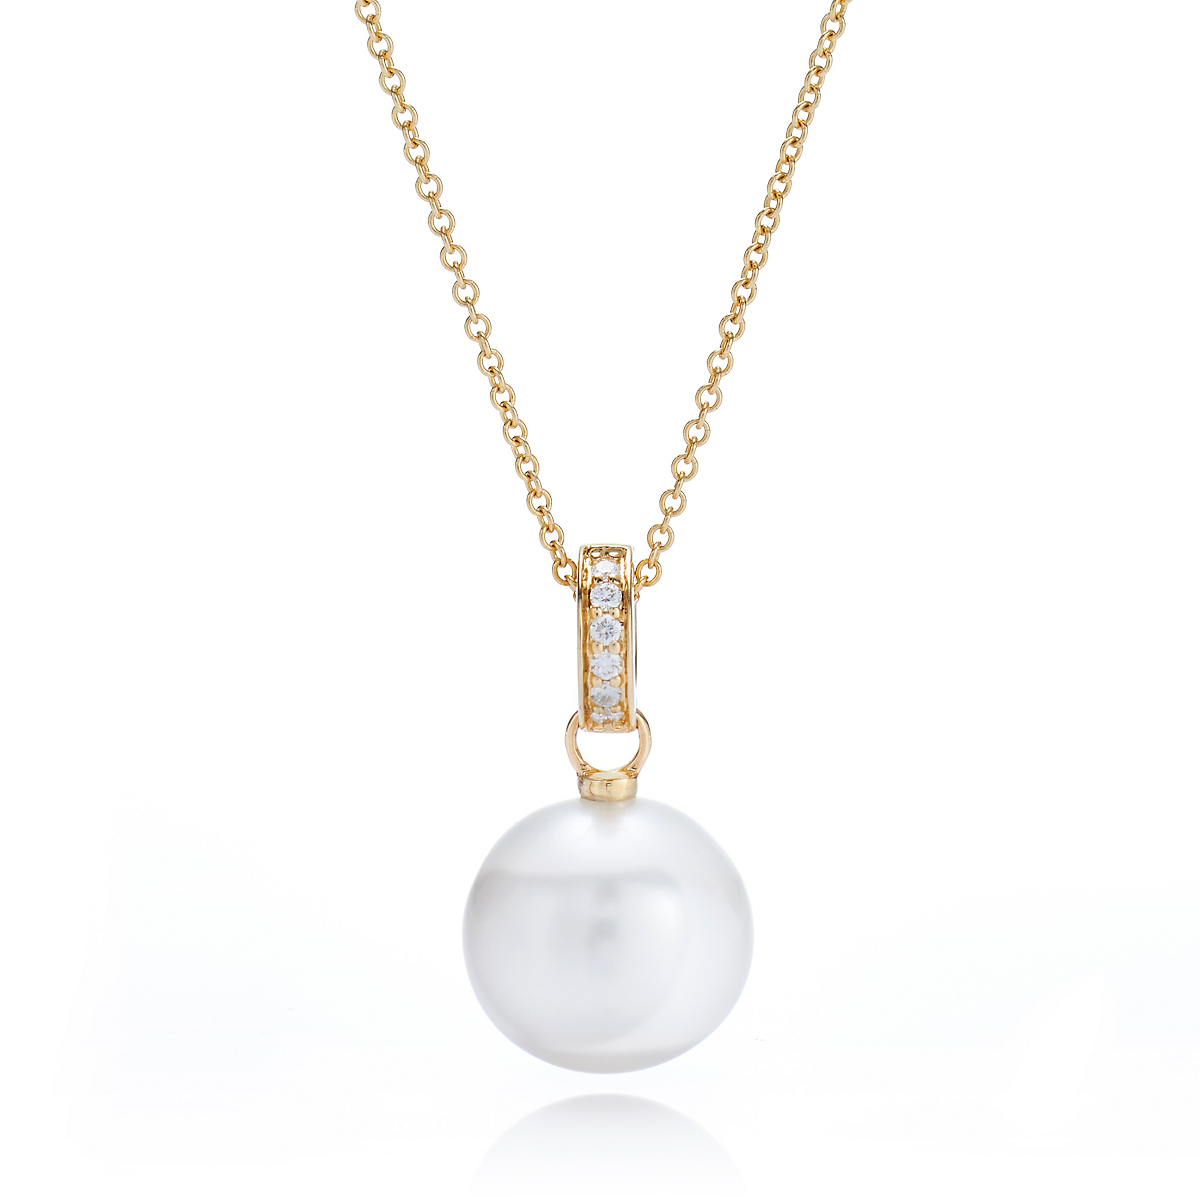 Gump's Round Pearl & Diamond Pendant Necklace